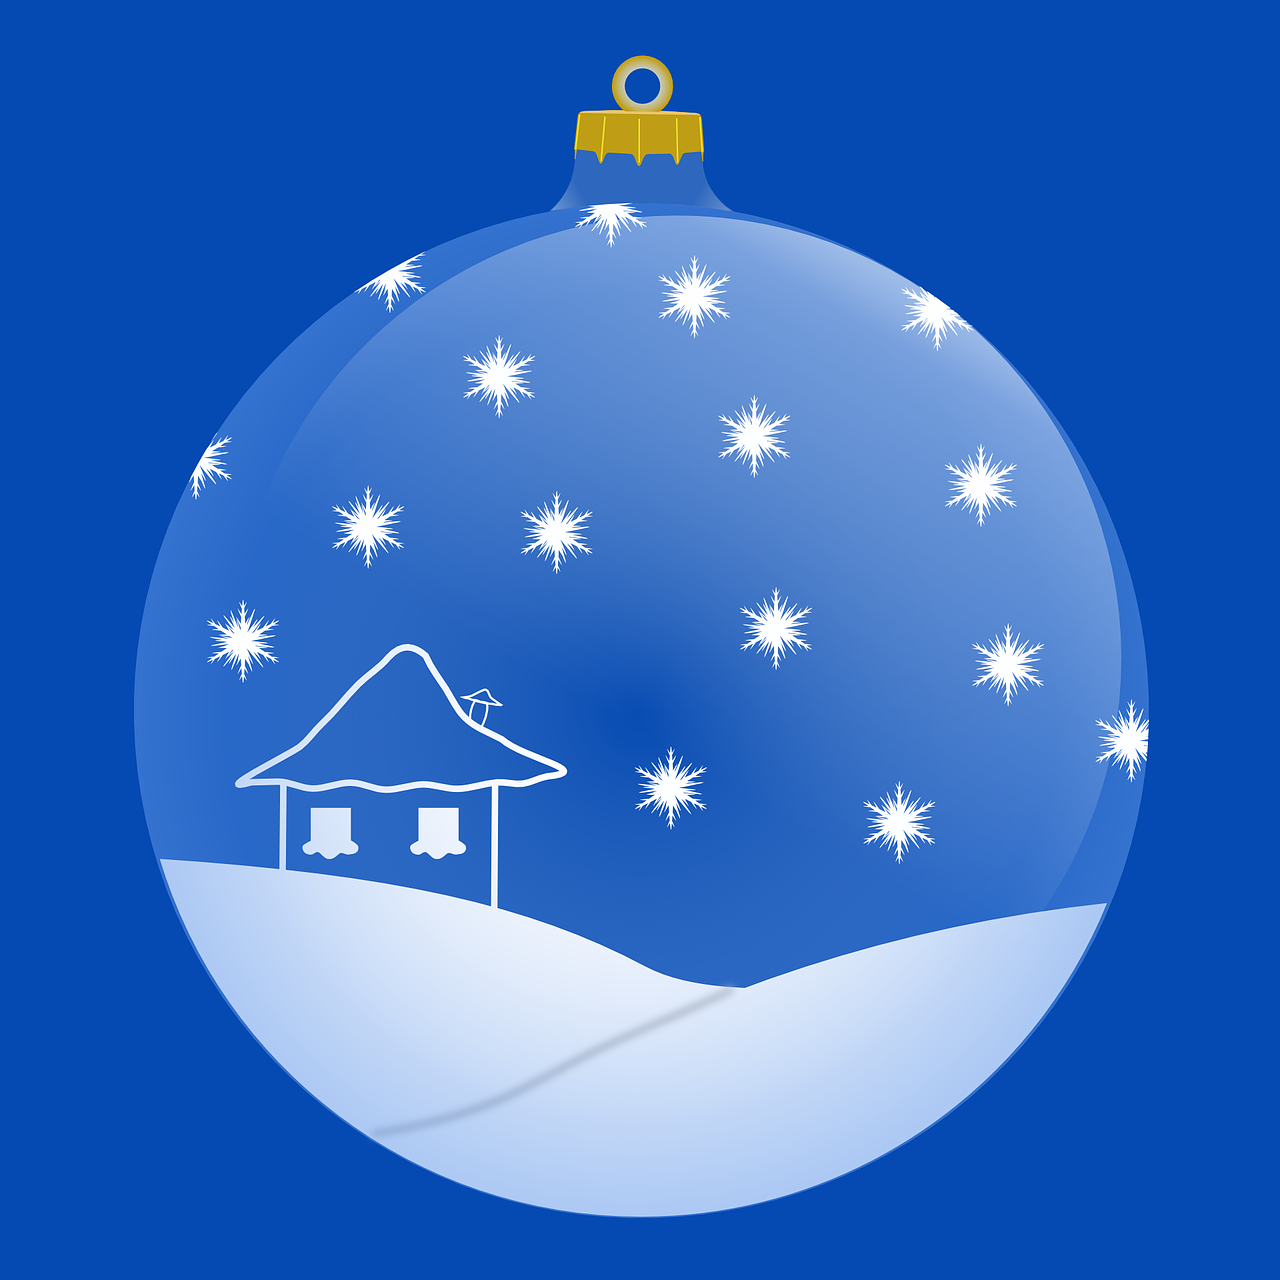 how to draw a Christmas ball, bauble 5